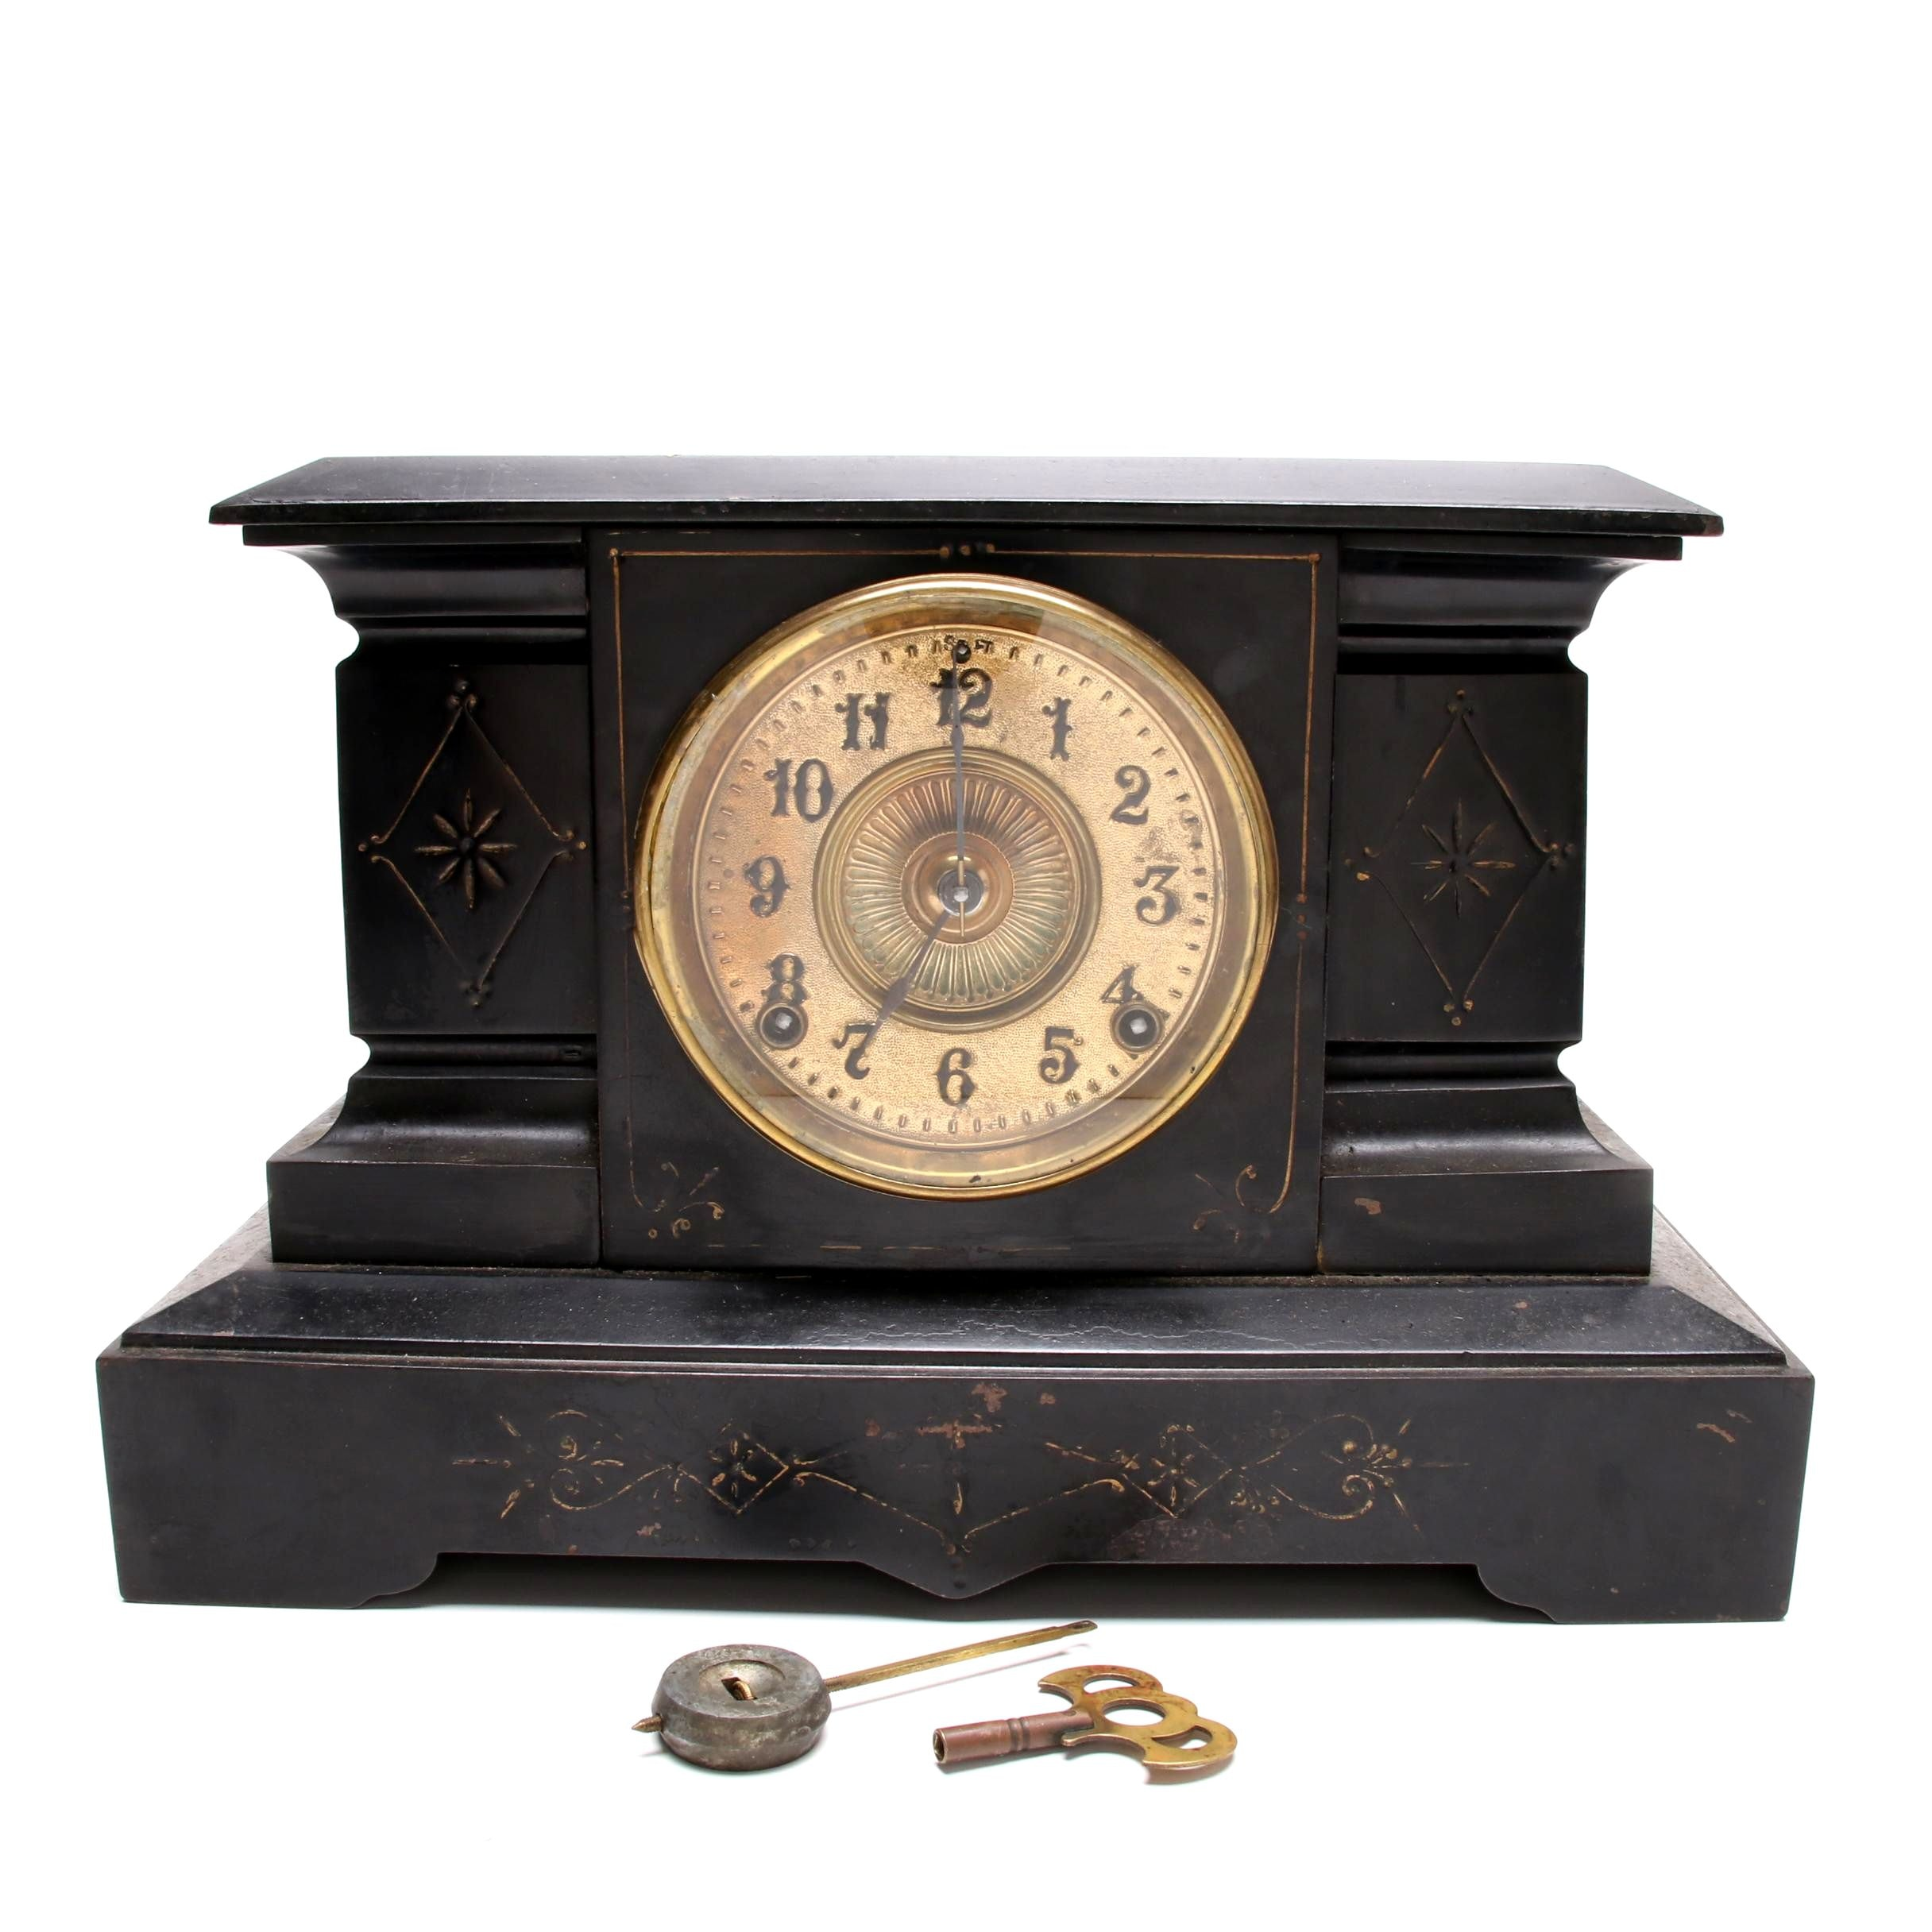 Ansonia Honed Slate Mantel Clock, Late 19th to Early 20th Century